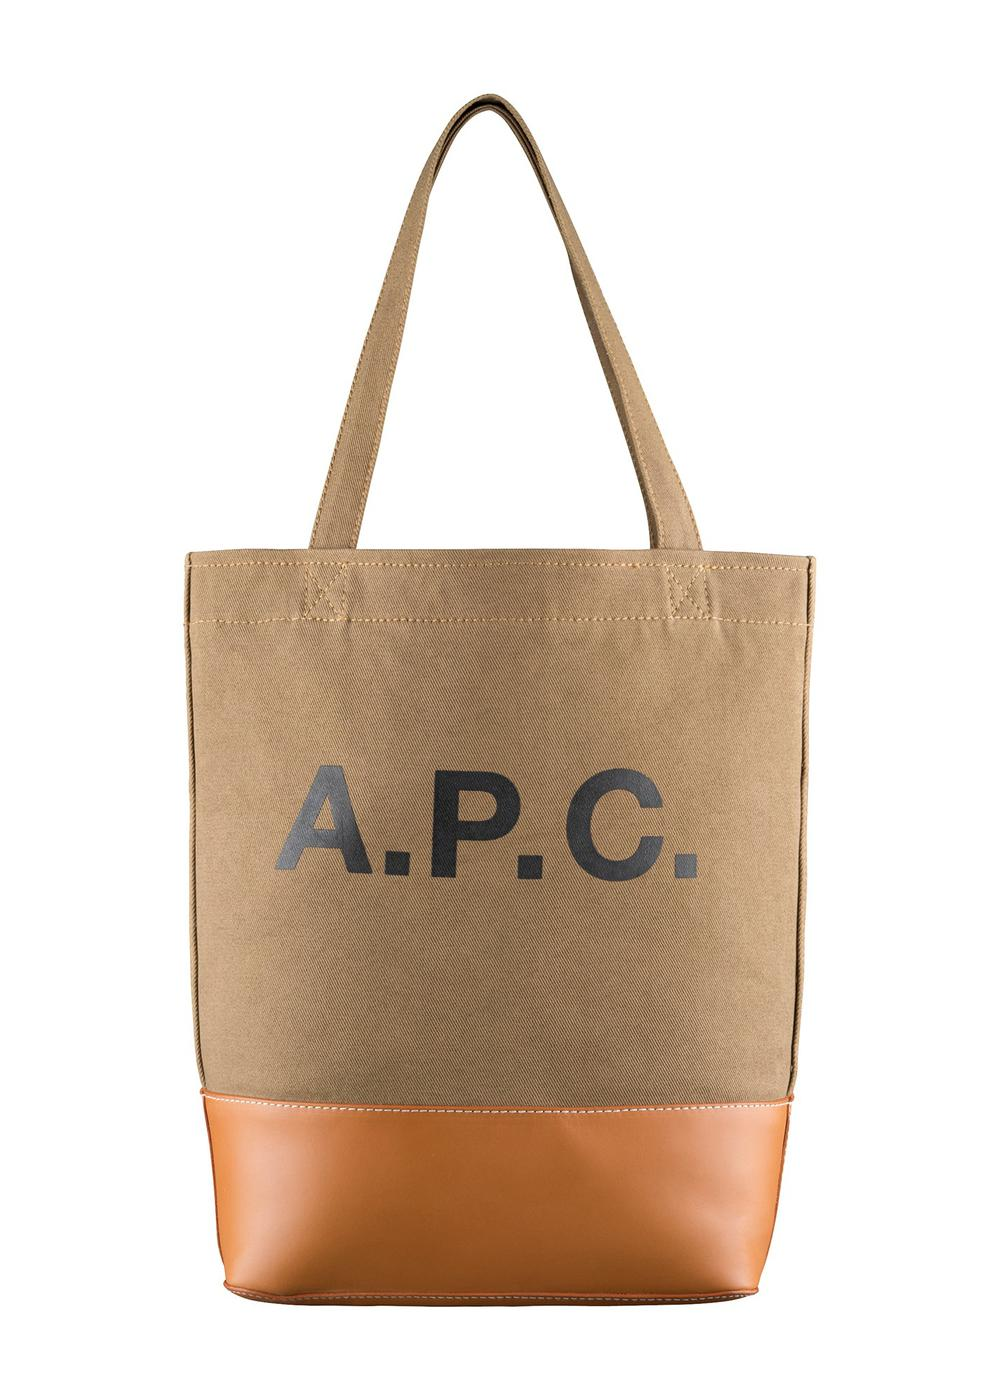 A.P.C. product